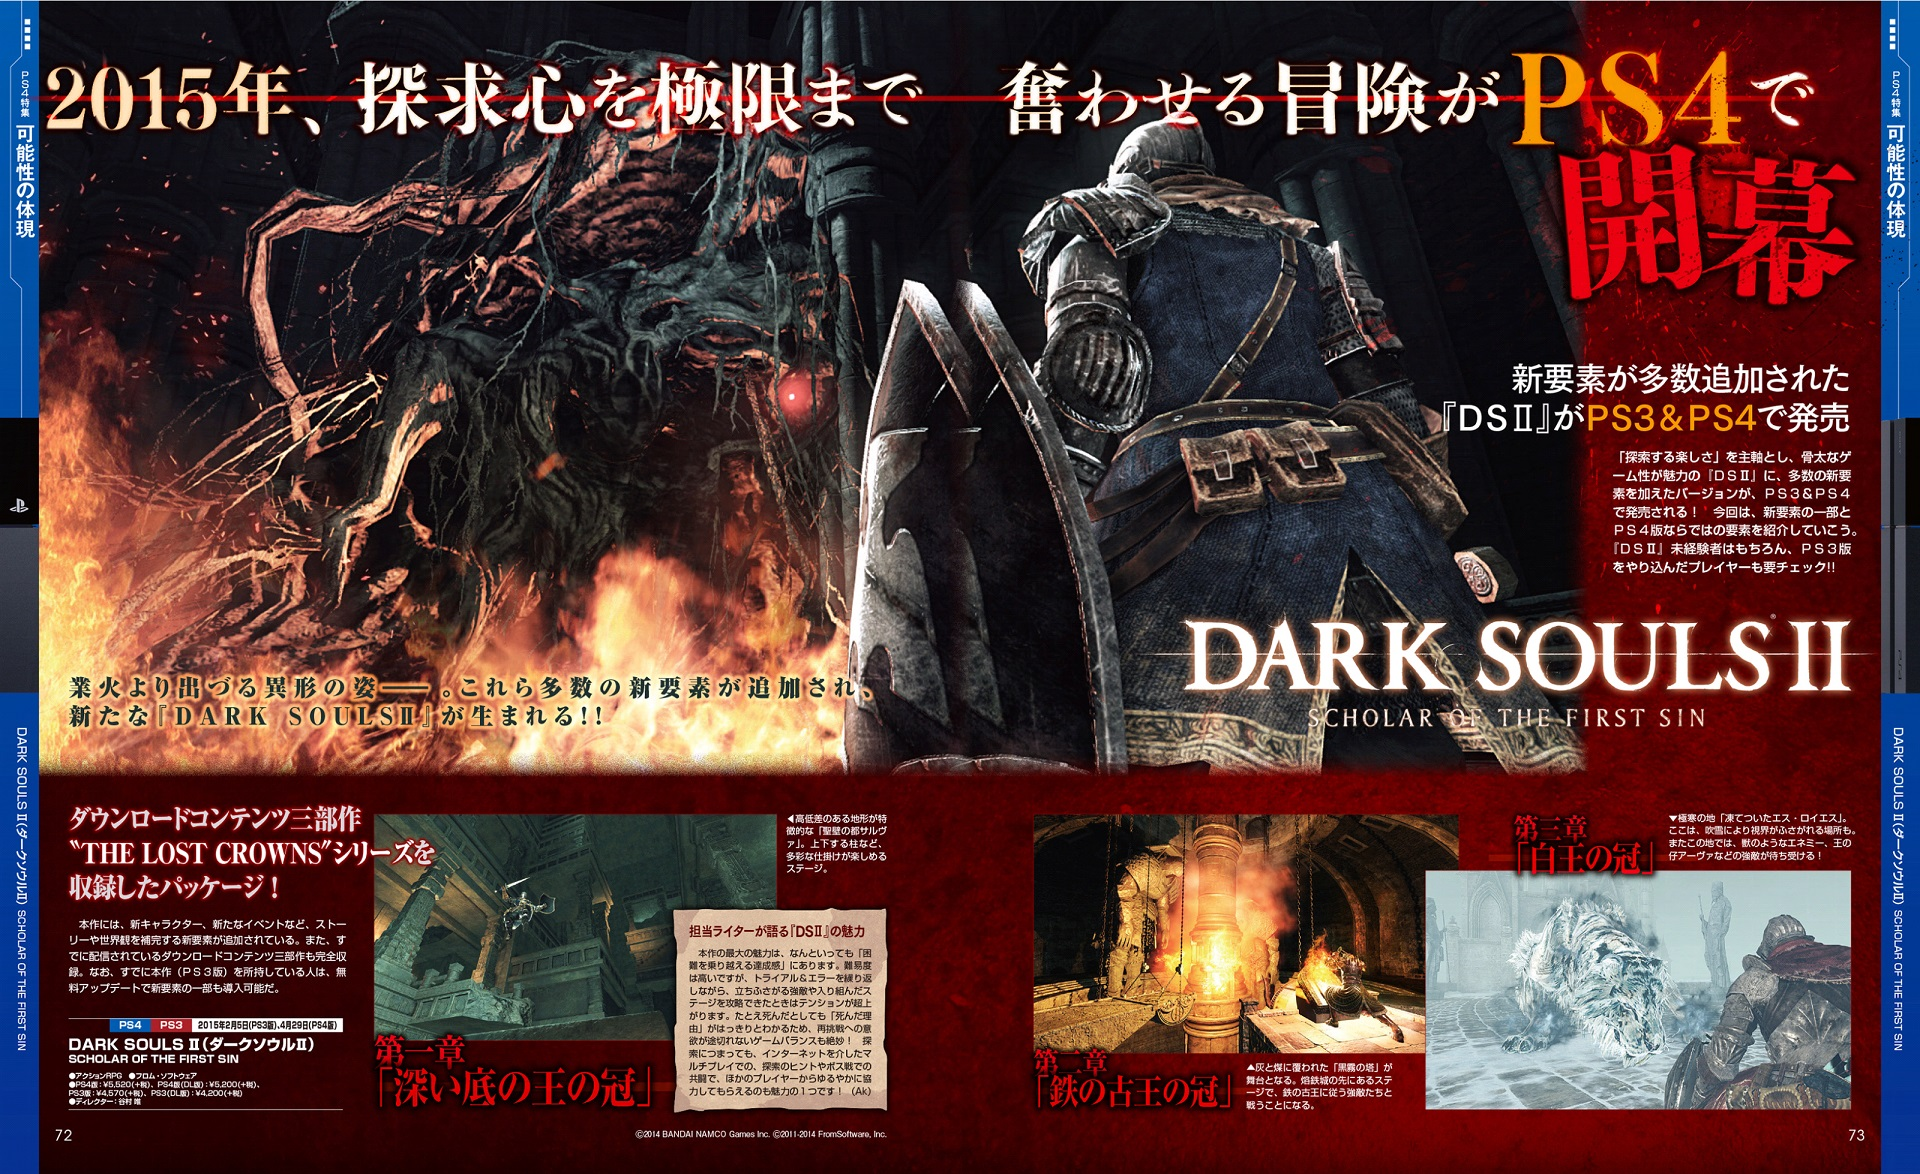 dark souls 2 scholar of the first sin guide